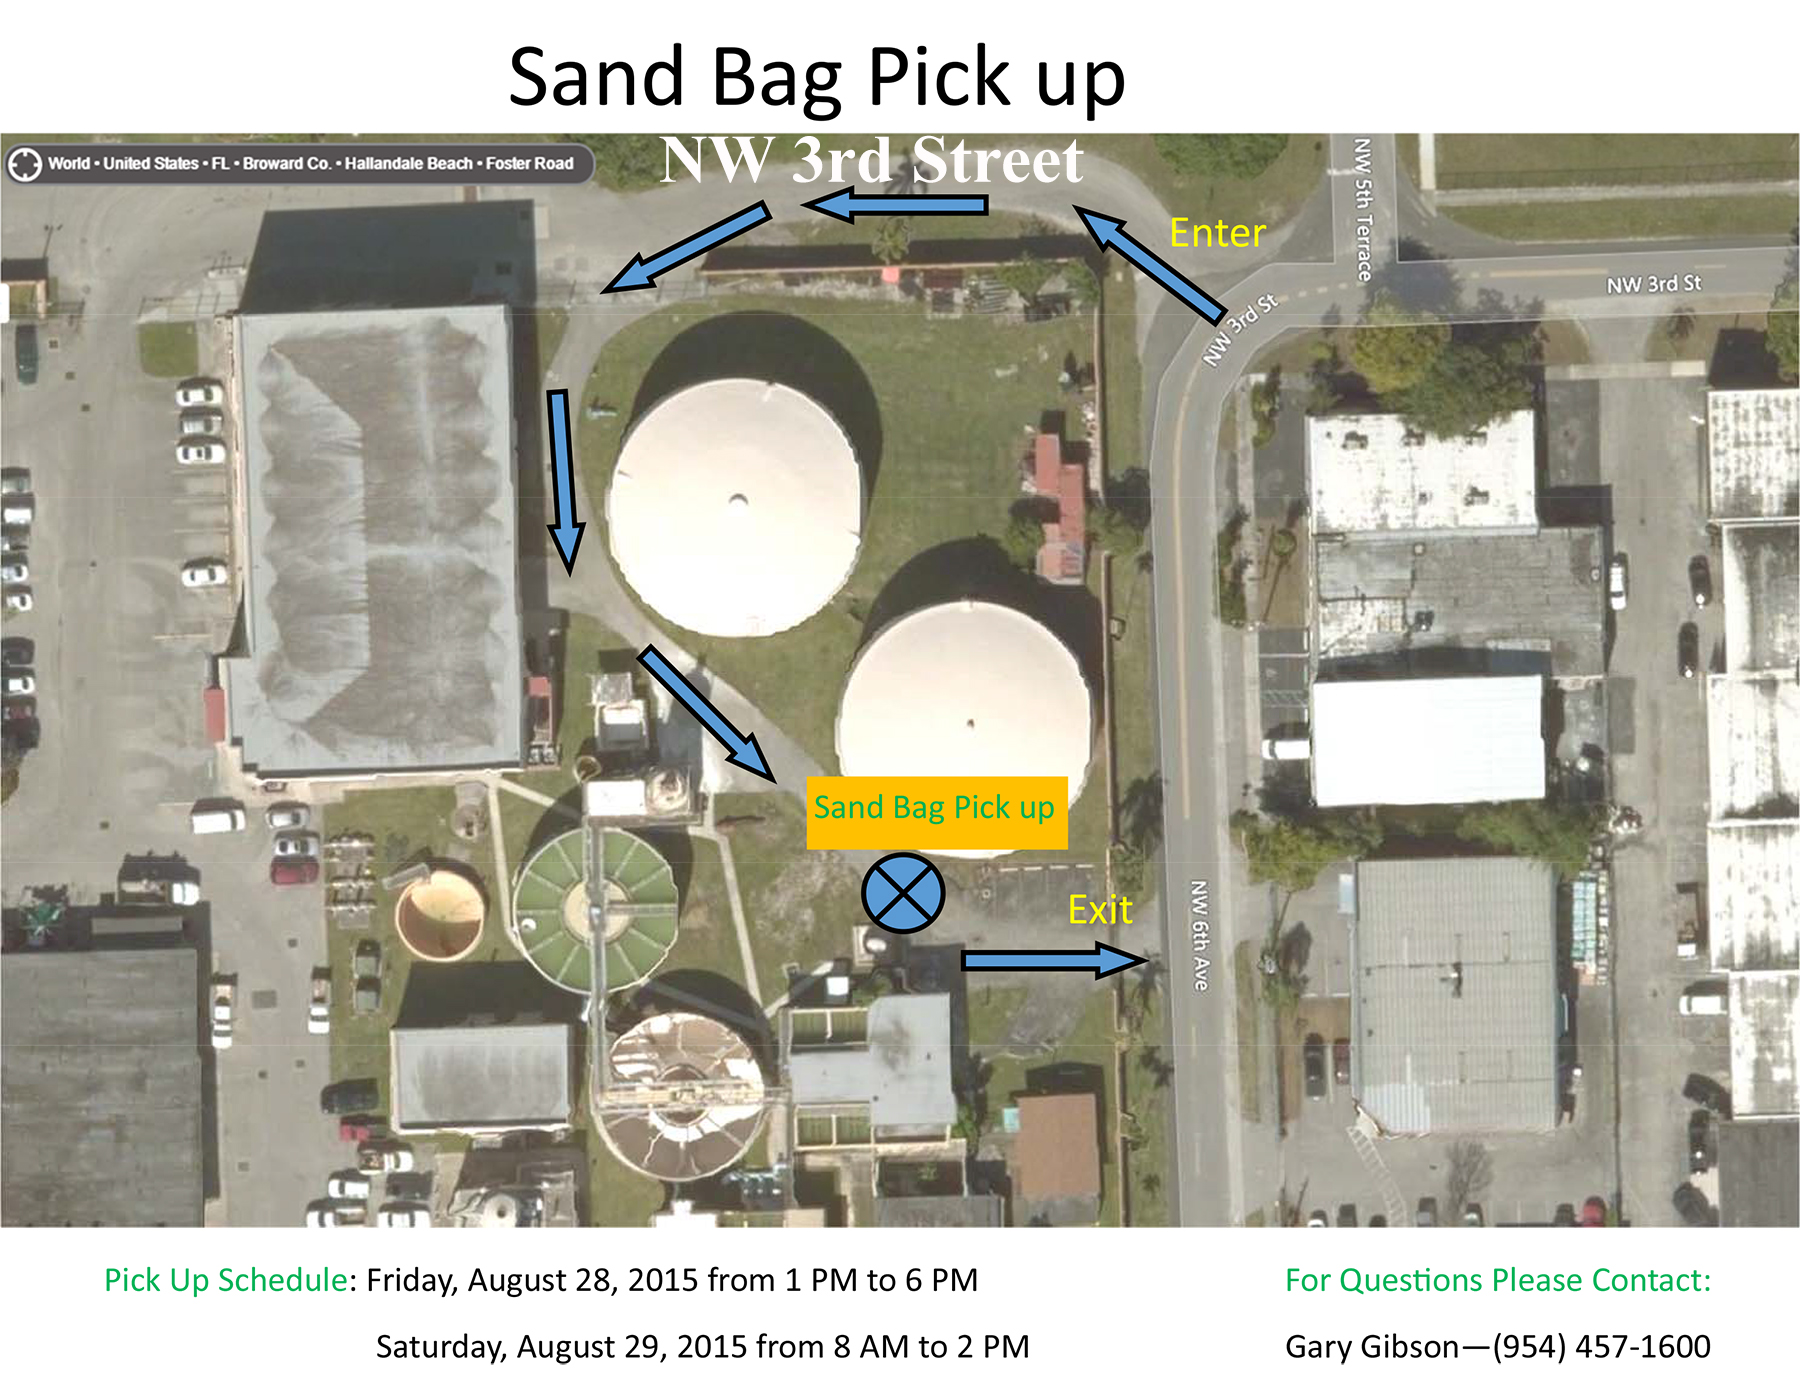 2015-08-28 Sand Bag Pick Up Map a.jpg